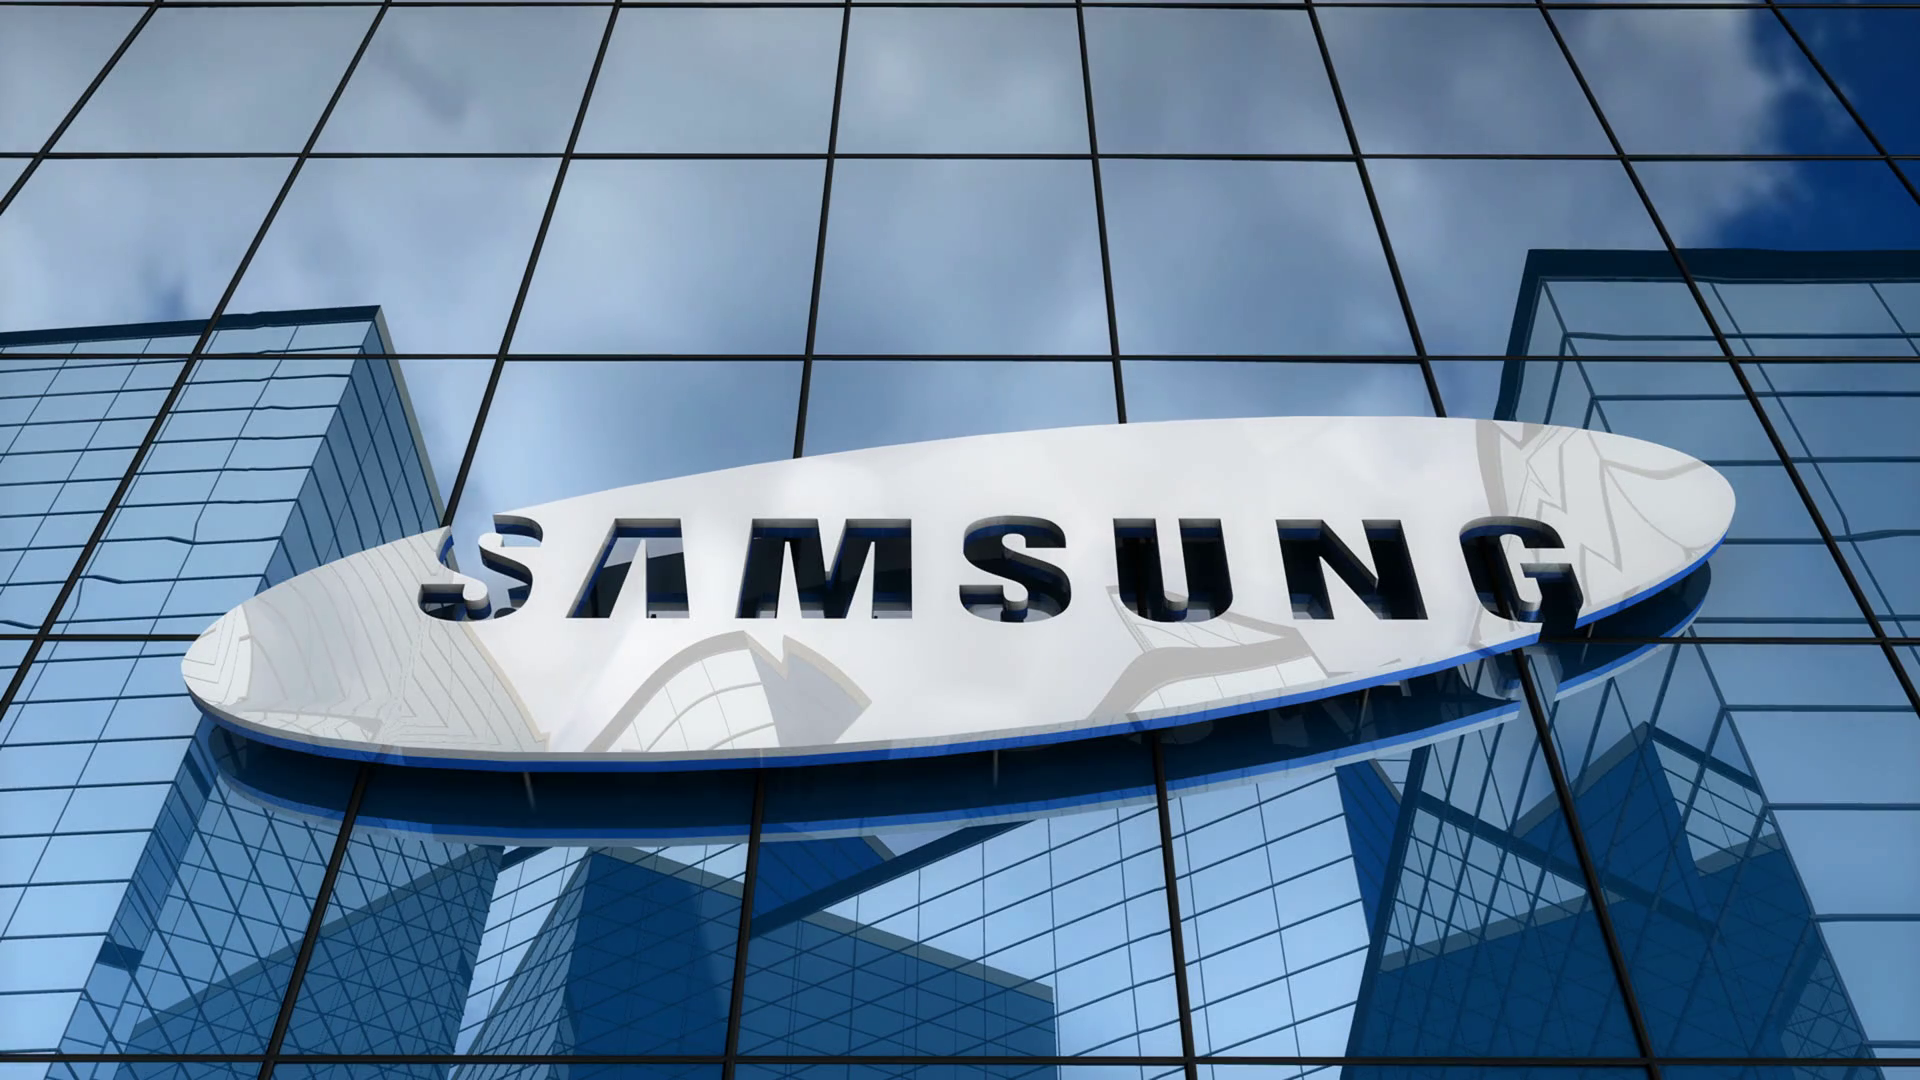 Editorial Samsung Logo On Glass Building Logo De Samsung 2019 2021045 Hd Wallpaper Backgrounds Download